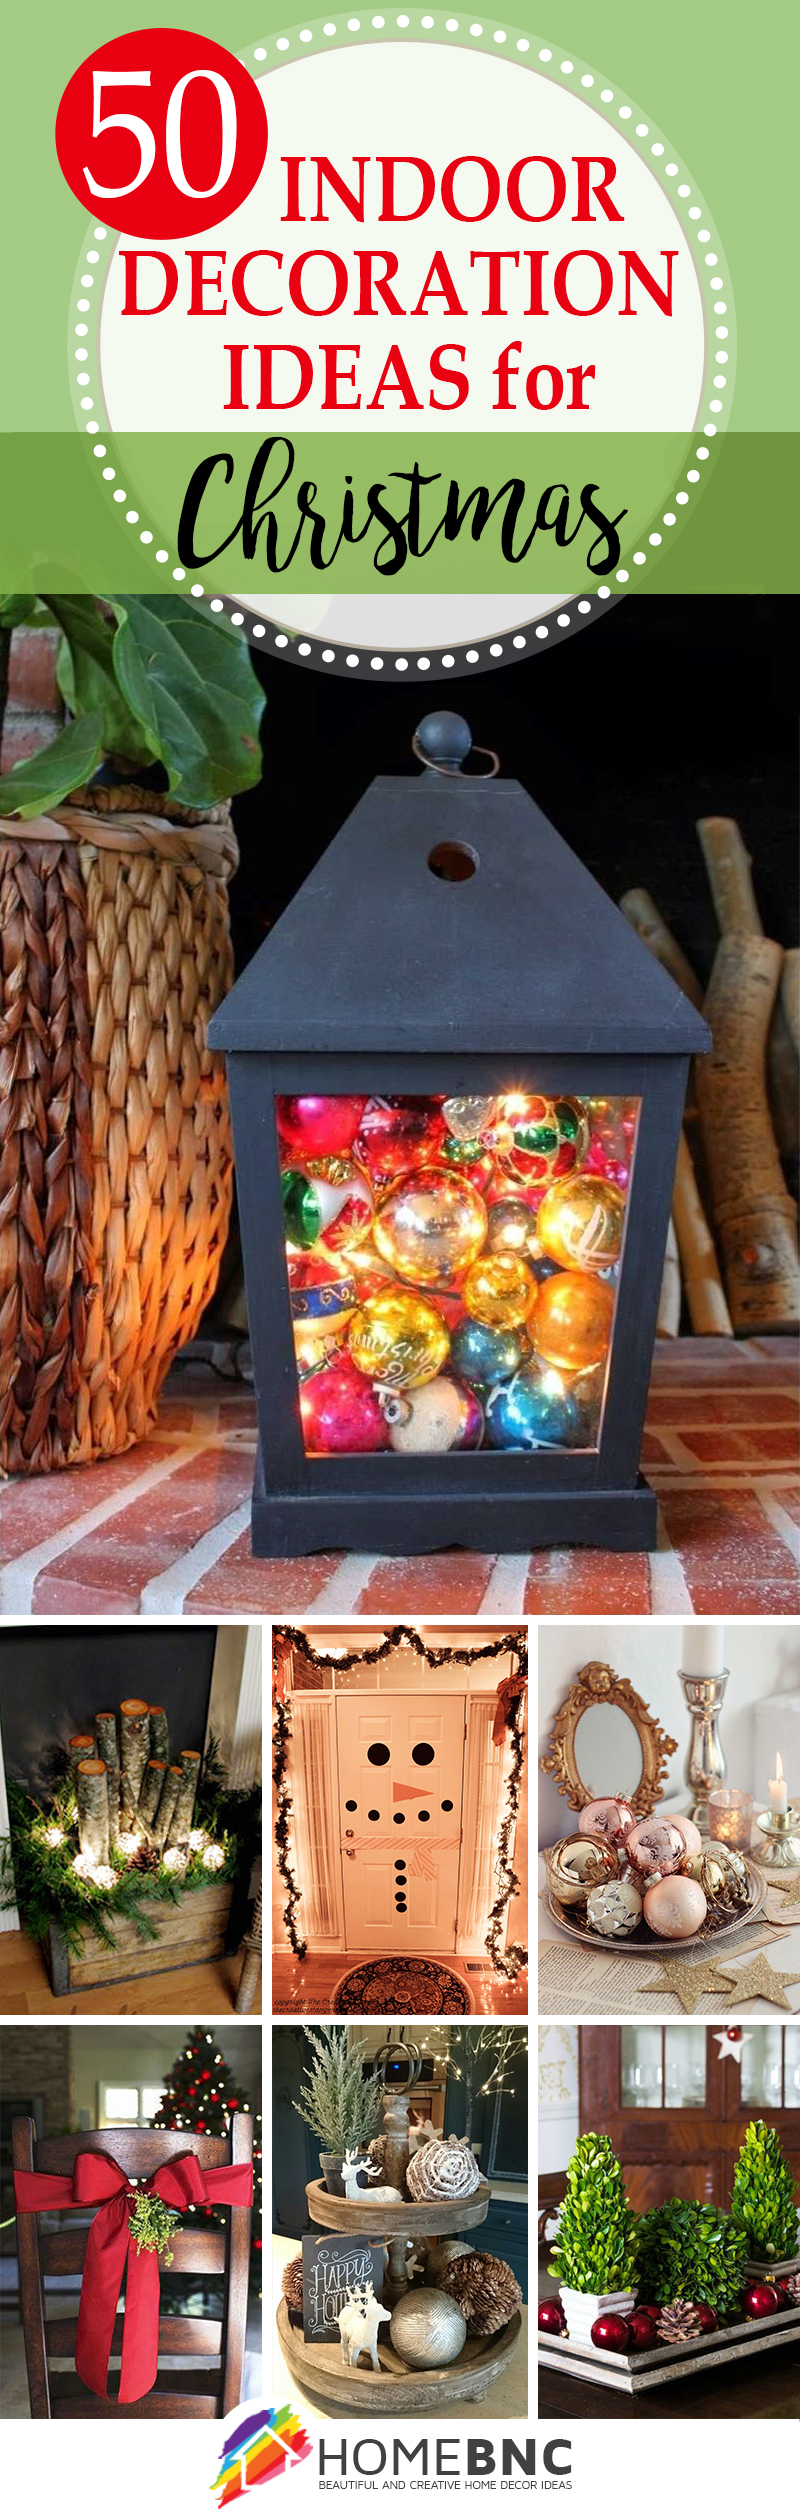 awesome decoration ideas that brings the joy of christmas to your home